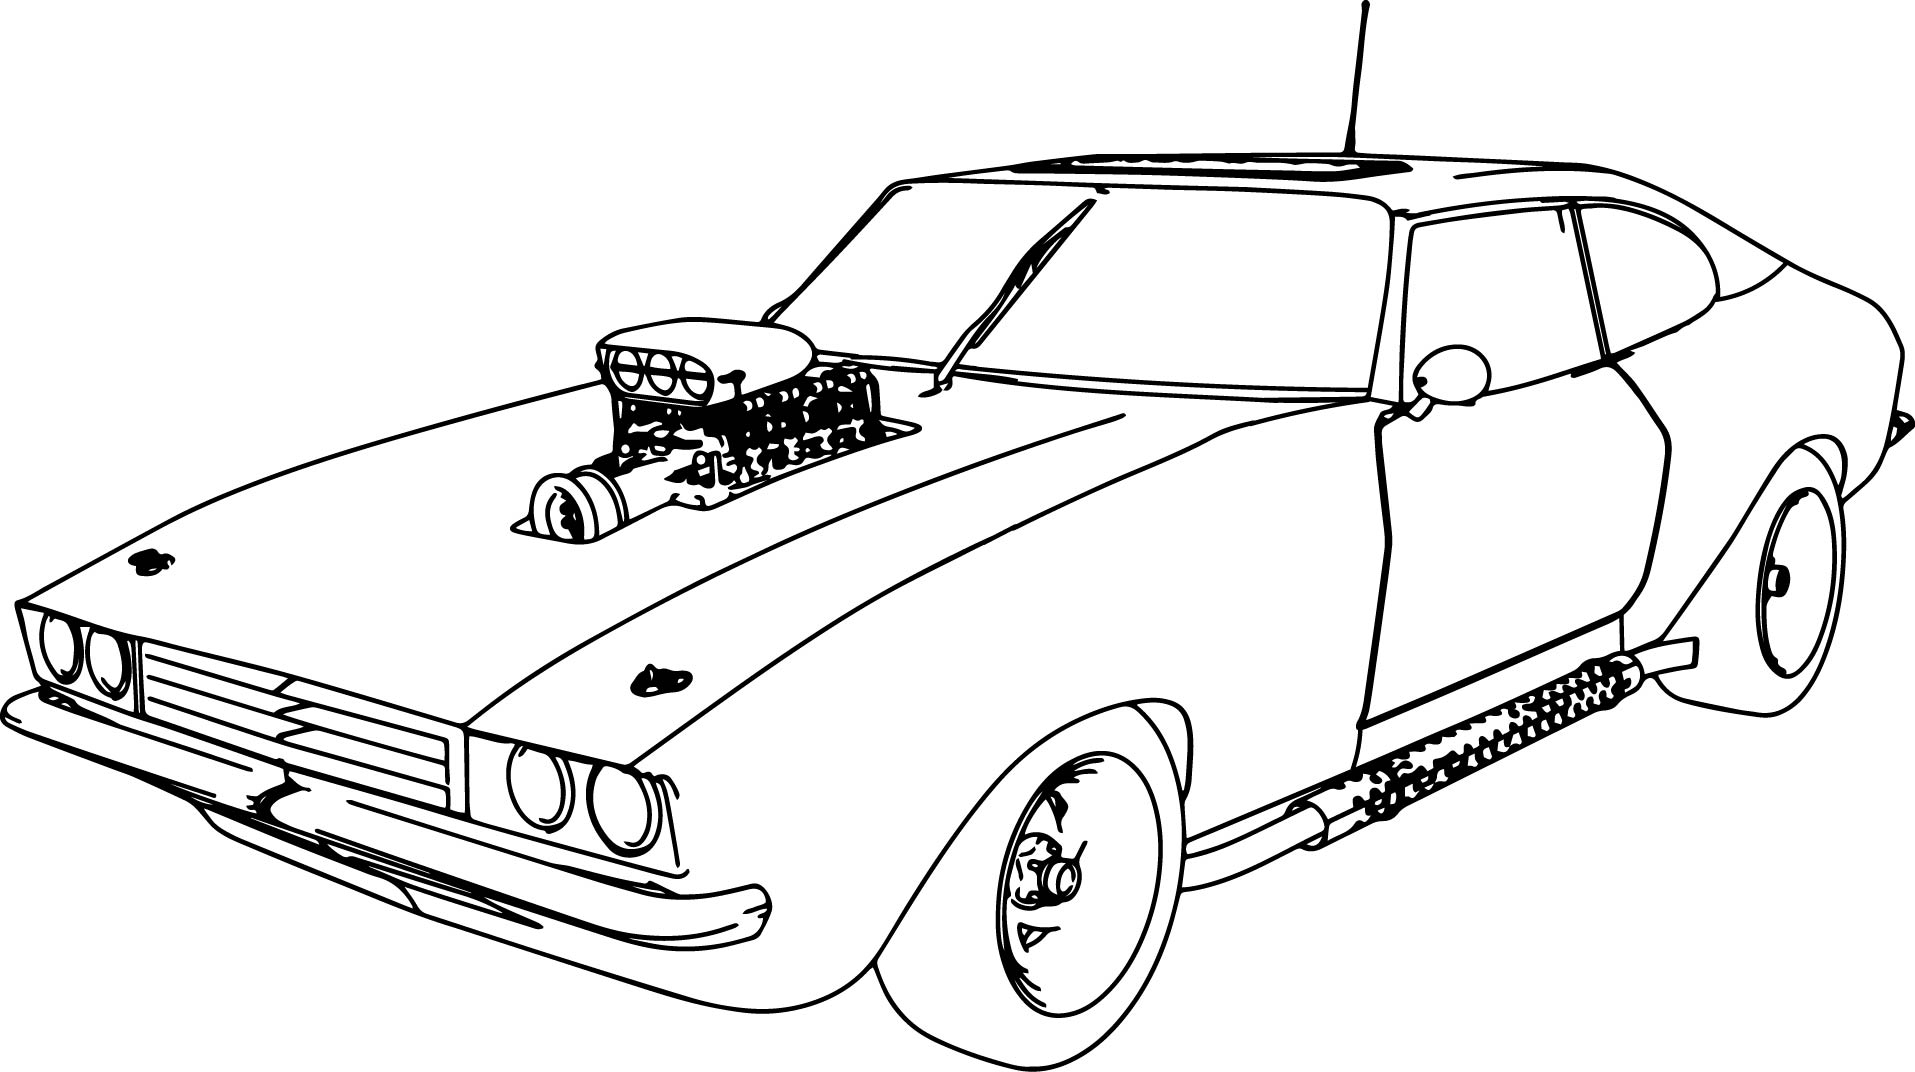 Coloring Pages Cars Coloring Pages Gallery – Free Coloring Sheets